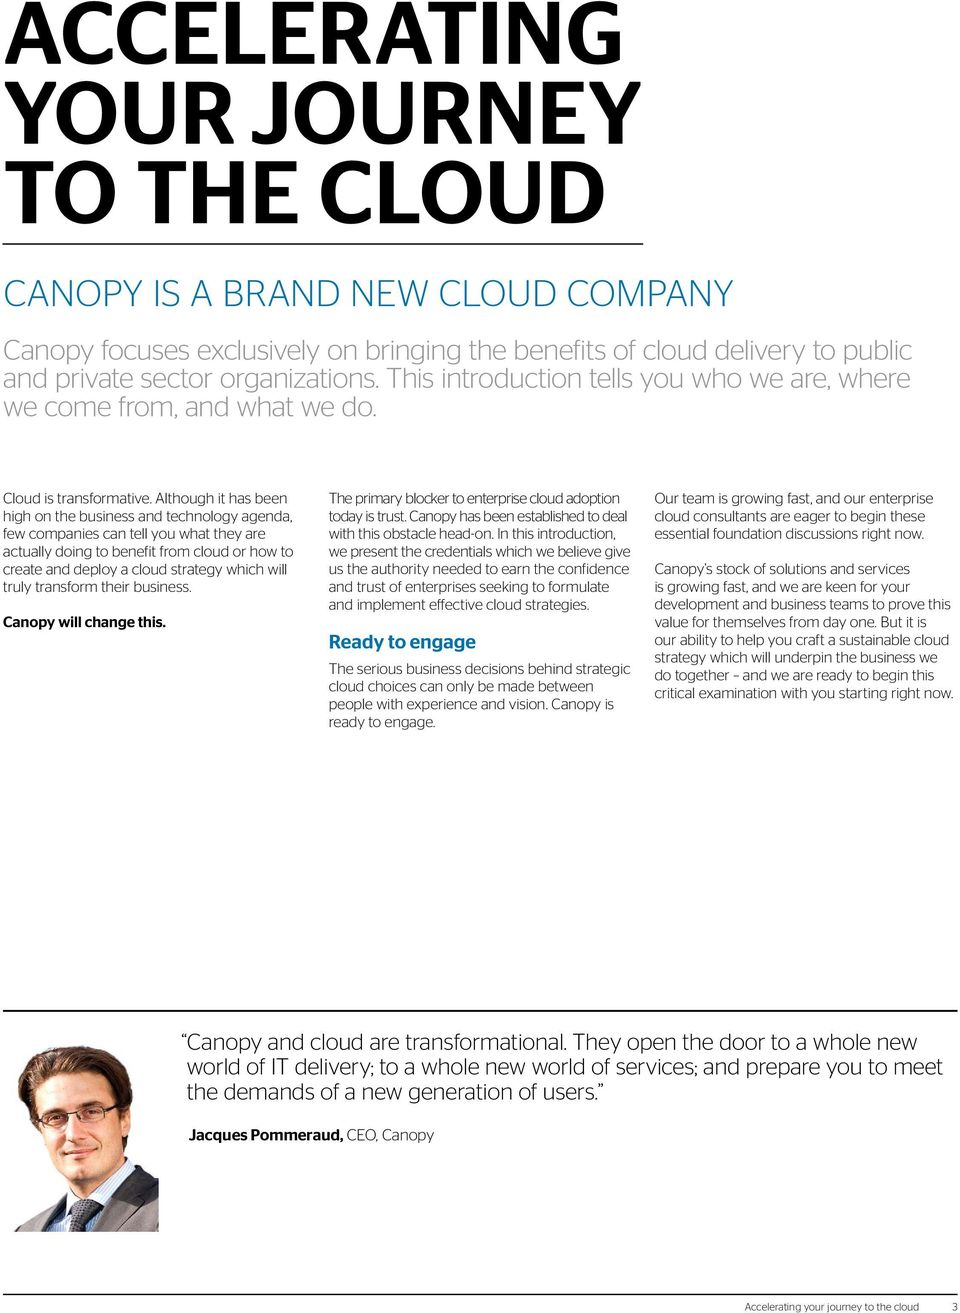 Although it has been high on the business and technology agenda, few companies can tell you what they are actually doing to benefit from cloud or how to create and deploy a cloud strategy which will